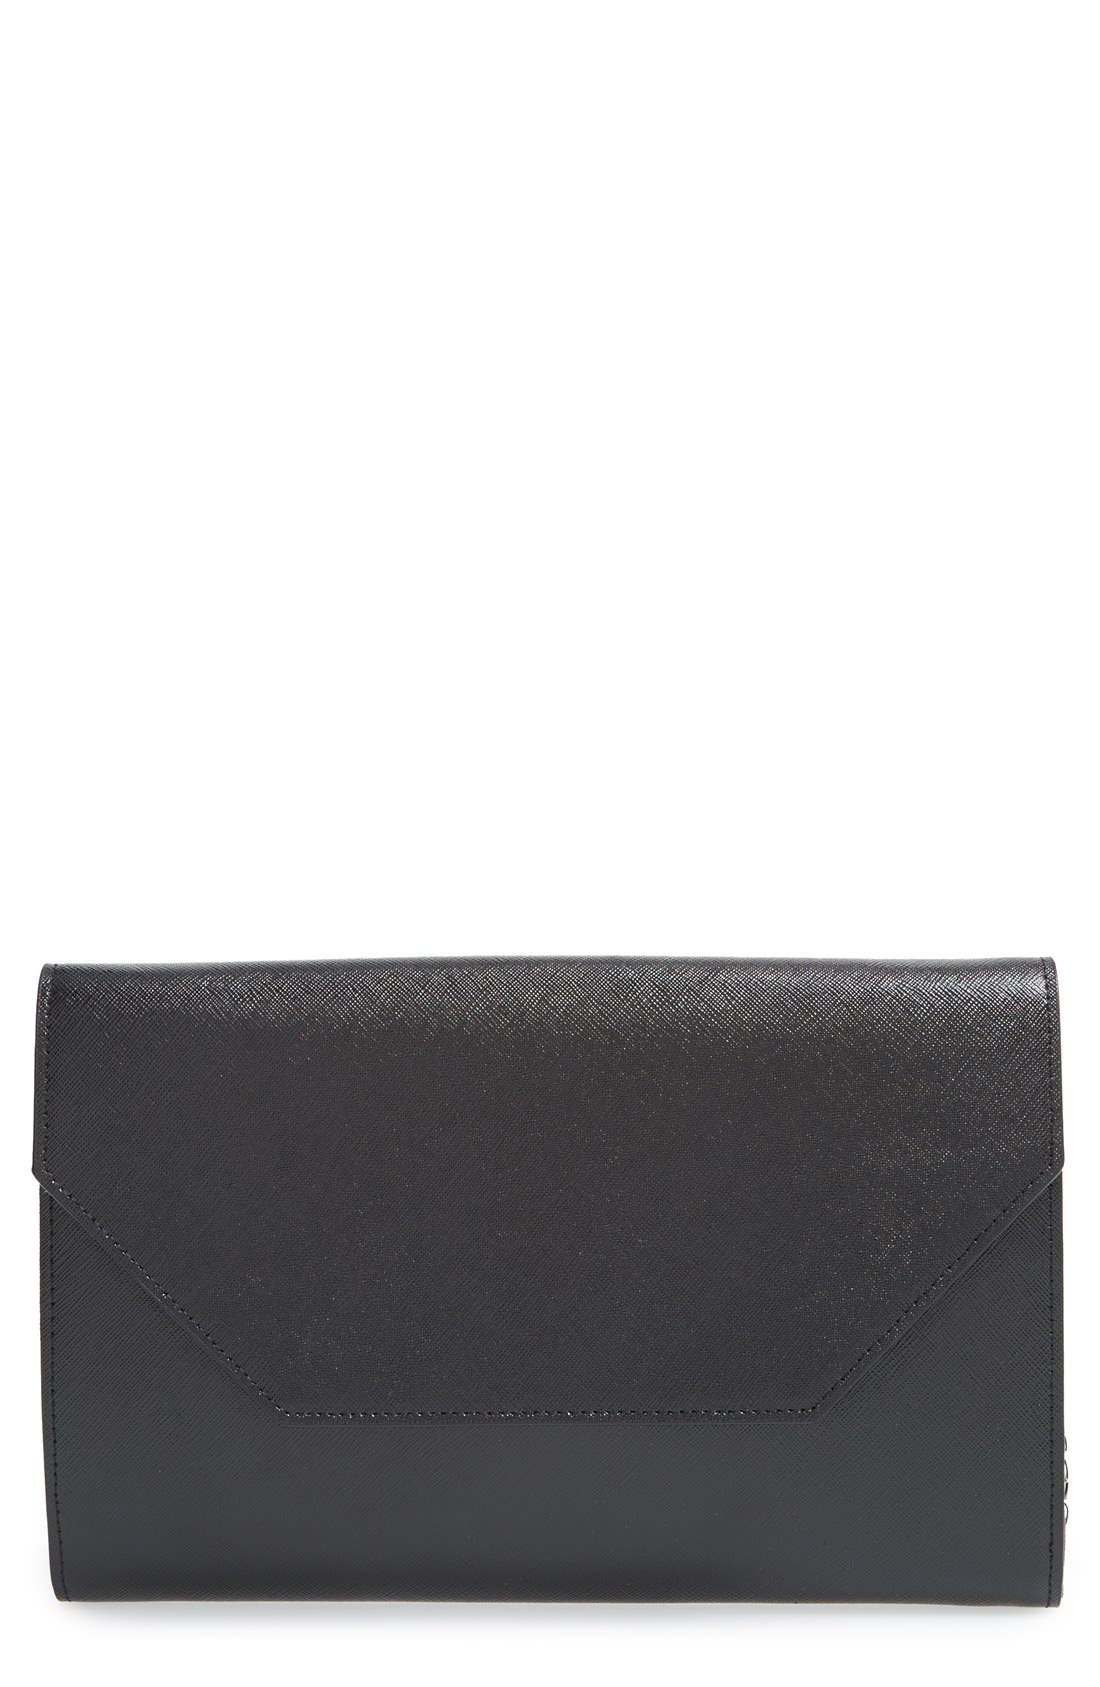 Angled Leather Day Clutch,                             Main thumbnail 1, color,                             001